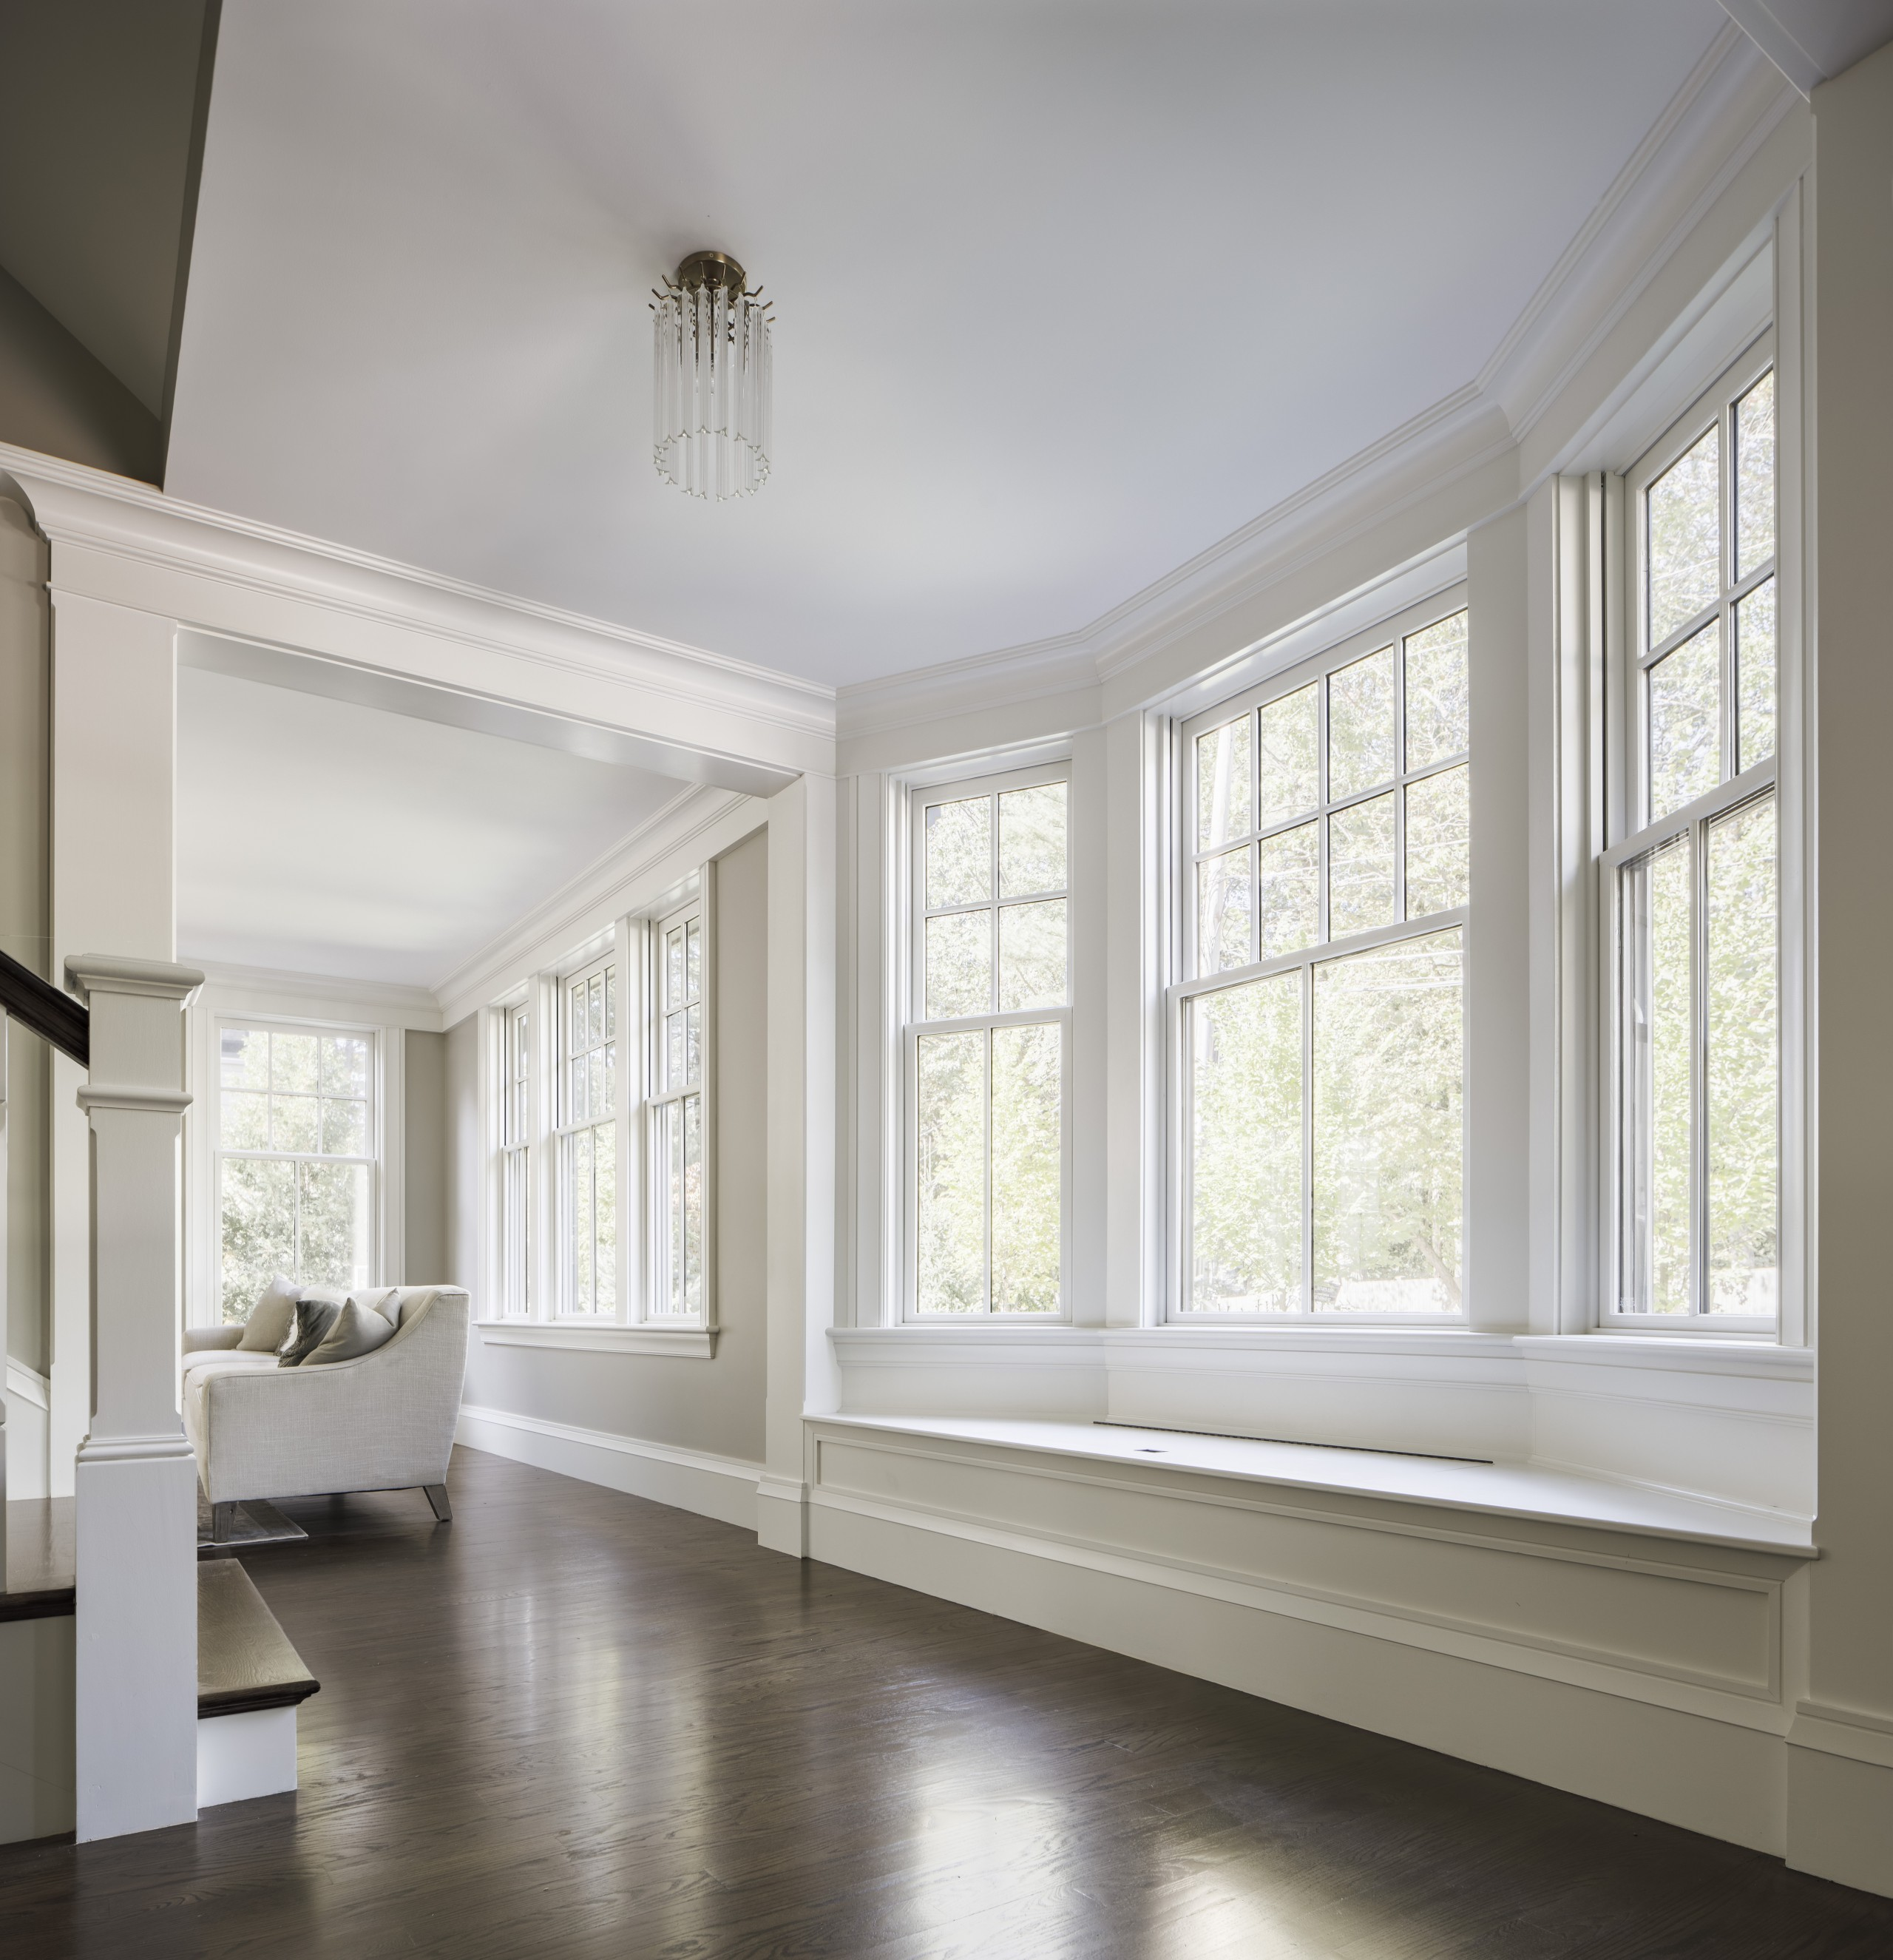 4 Easy Ways to Improve Home Energy Savings from Jeld-Wen - Big Bright Room Interior